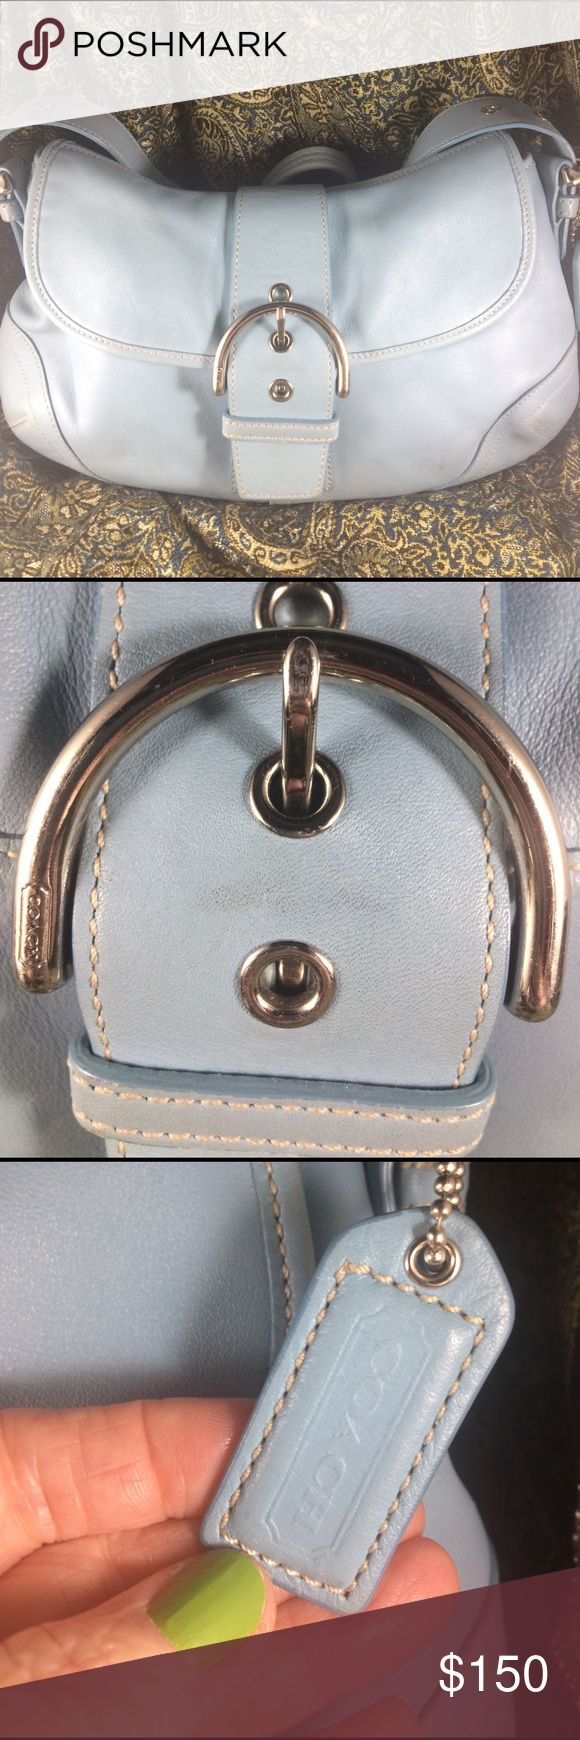 Cute Authentic Coach soho pool leather buckle bag This is an adorable authentic Coach light blue shoulder bag with silver hardware. Cute kidney shape with a large buckle in front. Sip compartment in side and two other open pockets. Signature fabric on inside of bag. This bag is gently used with a few small scuff marks and one small ink mark on outside. On the inside seems to have some sort of tape residue along seem which is pictured I will attempt to remove this residue before mailing off…